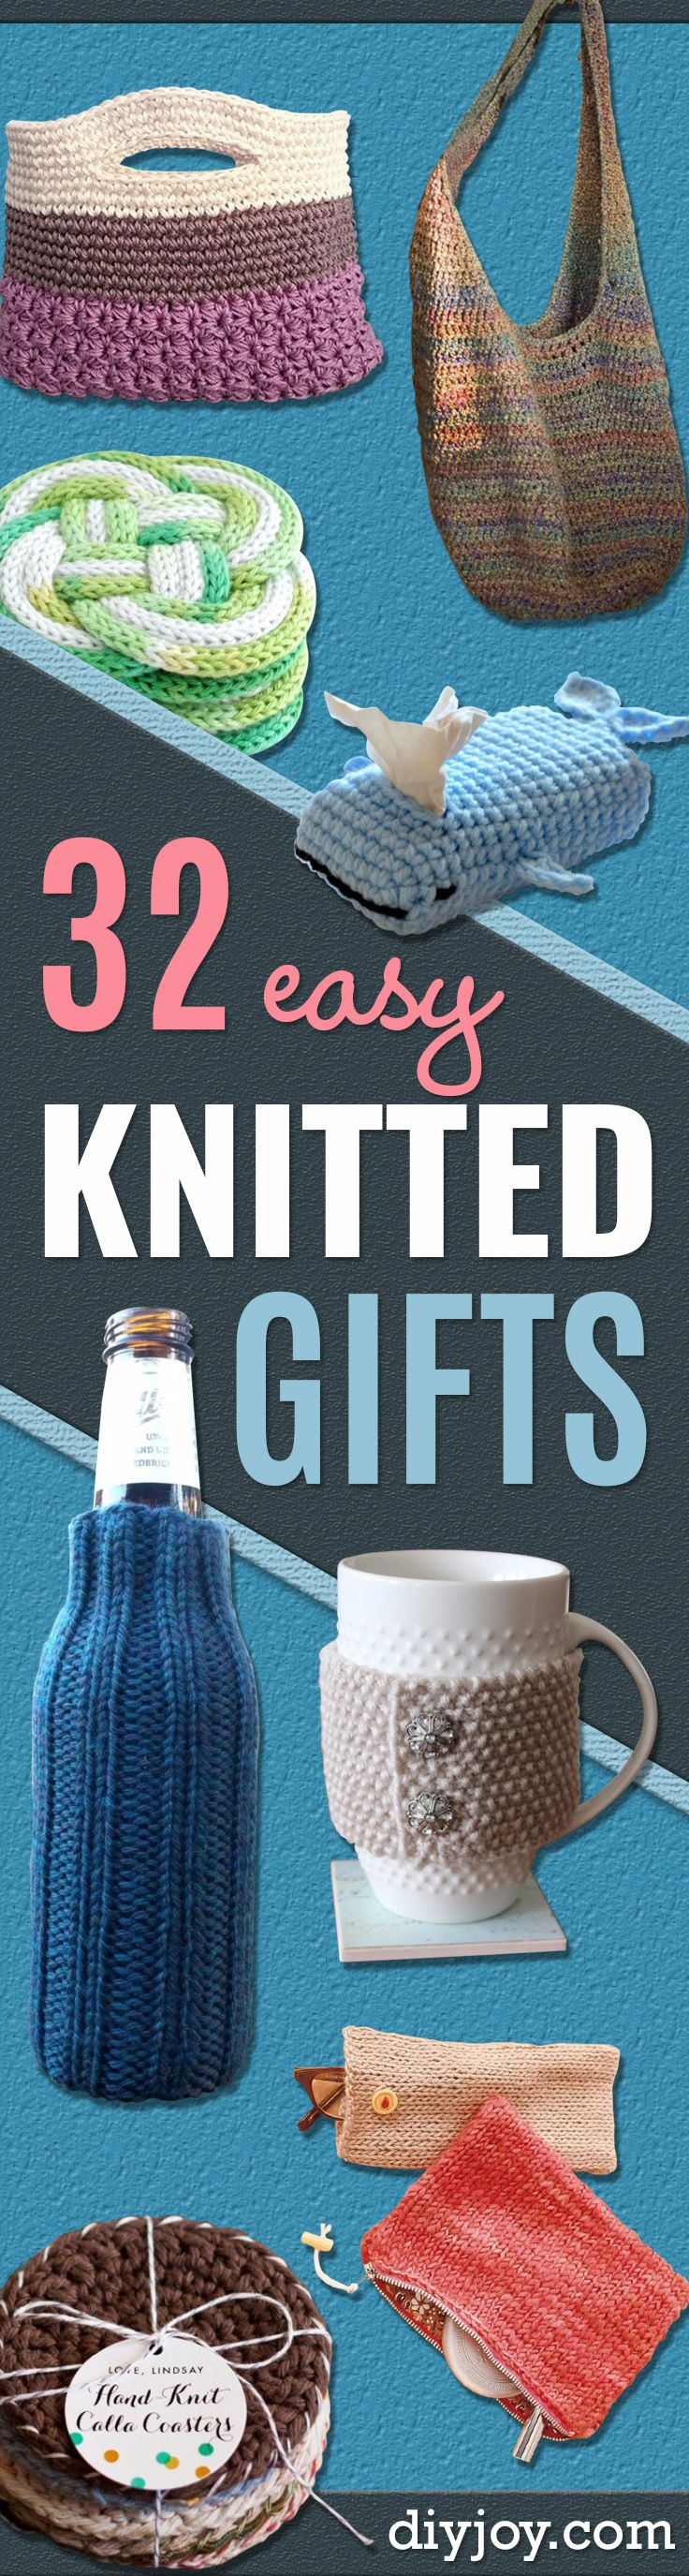 32 Easy Knitted Gifts That You Can Make In Hours | Knit gifts, Easy ...